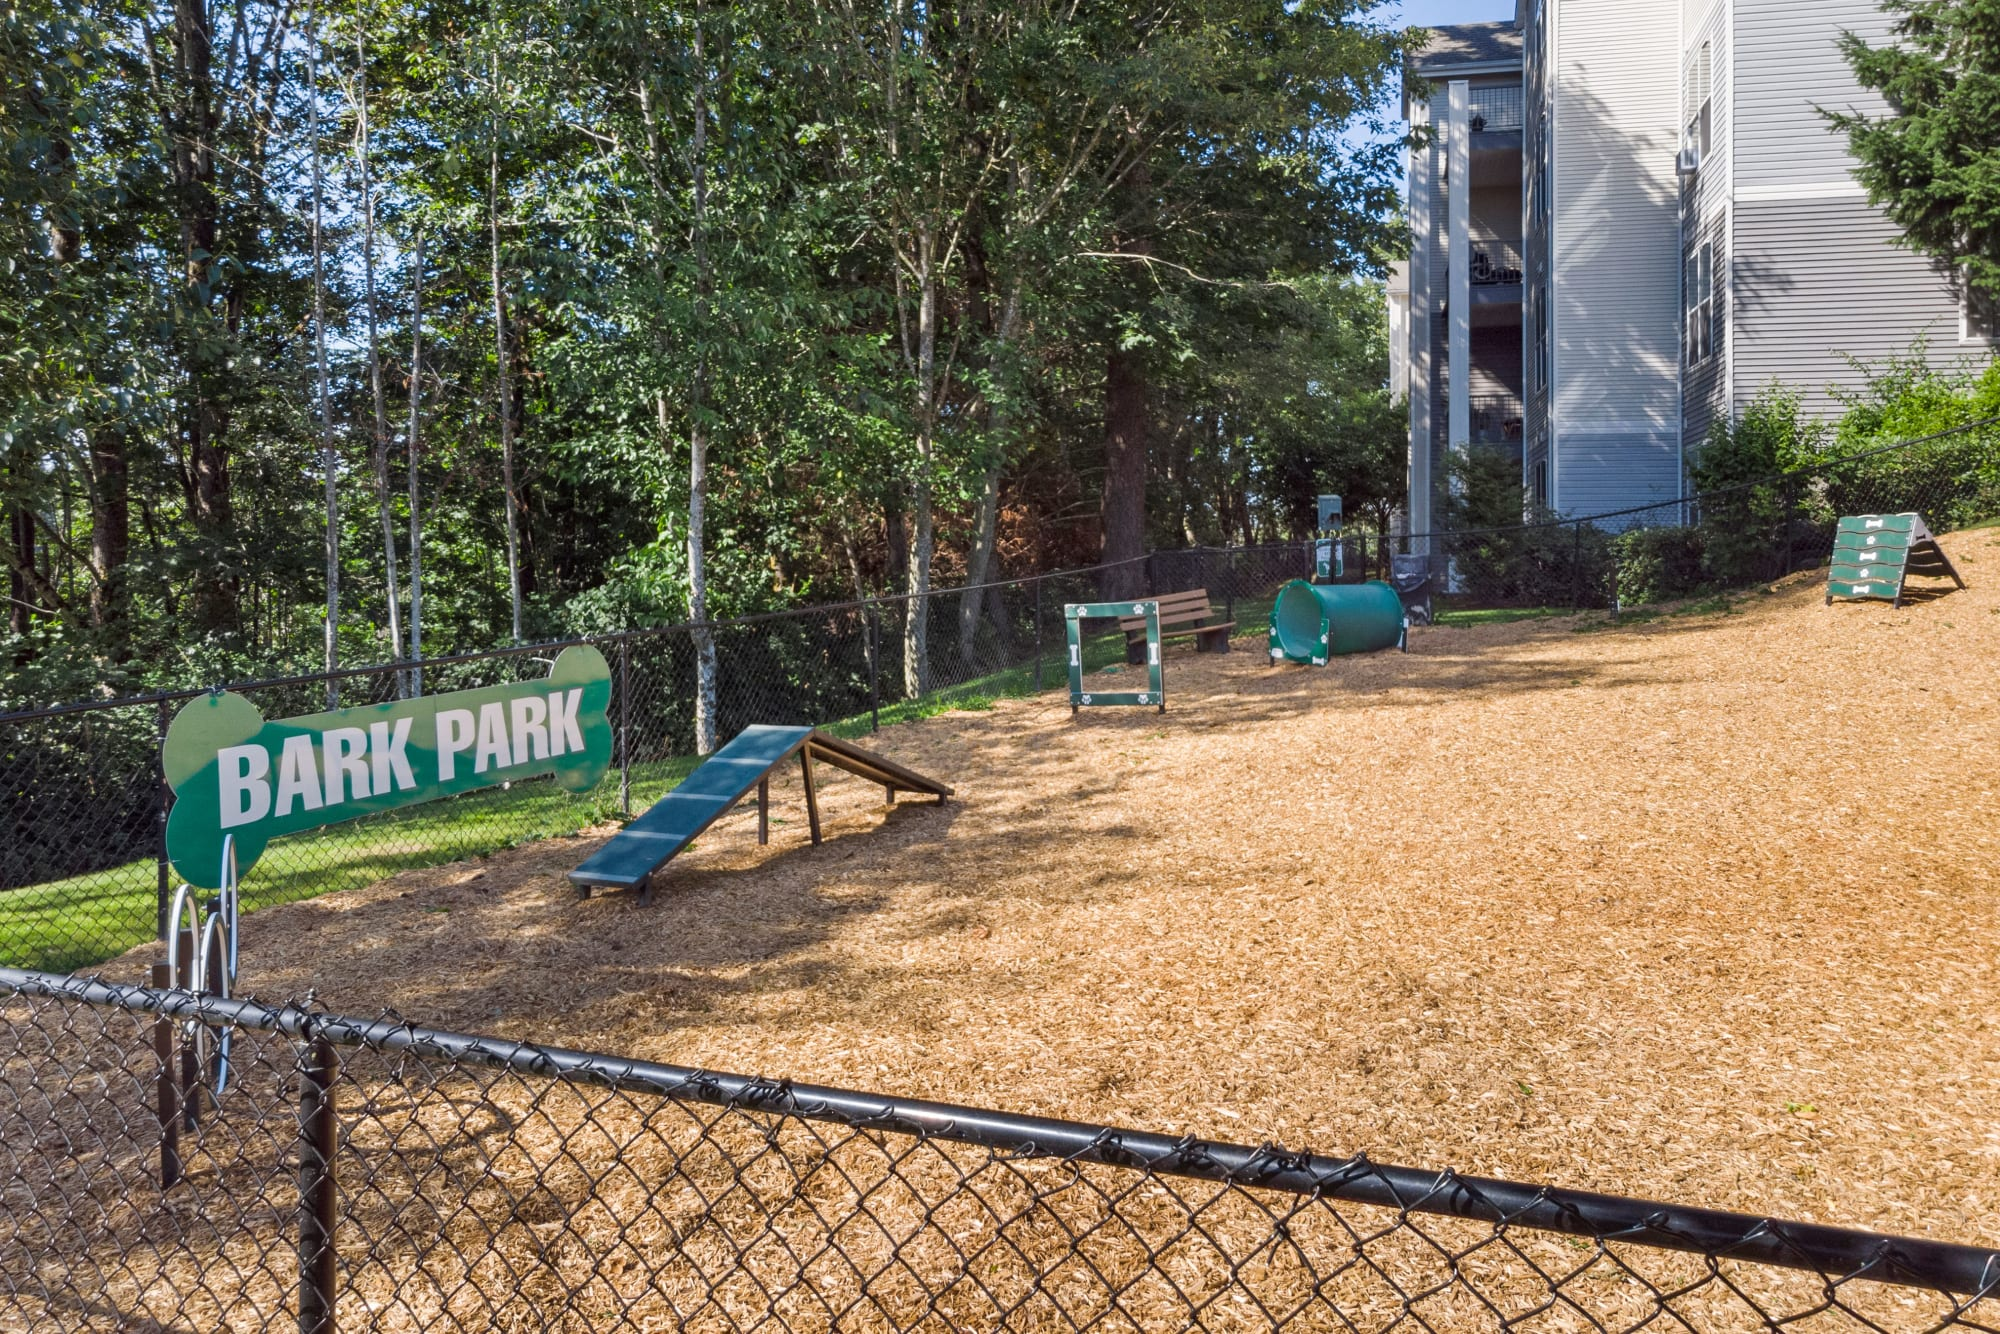 Dog park with lush landscaping and toys/obstacles